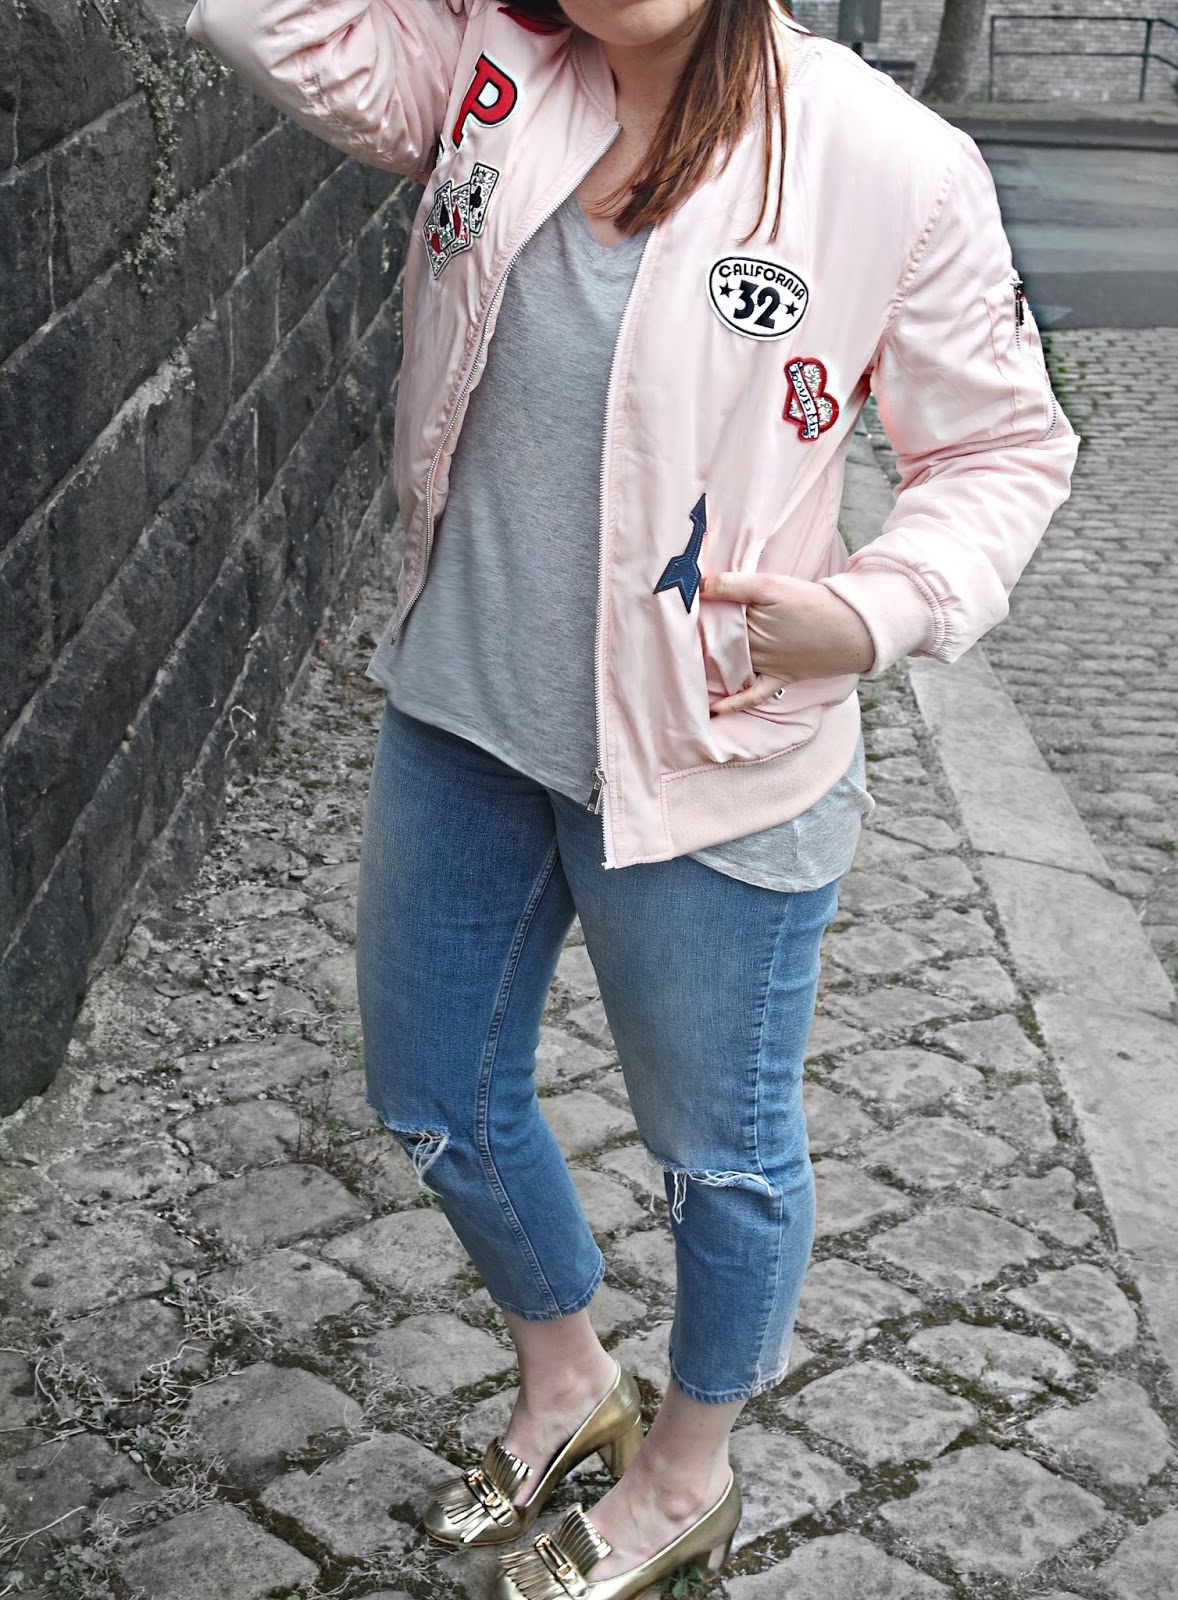 See more for styling tips on how to wear the basic bomber